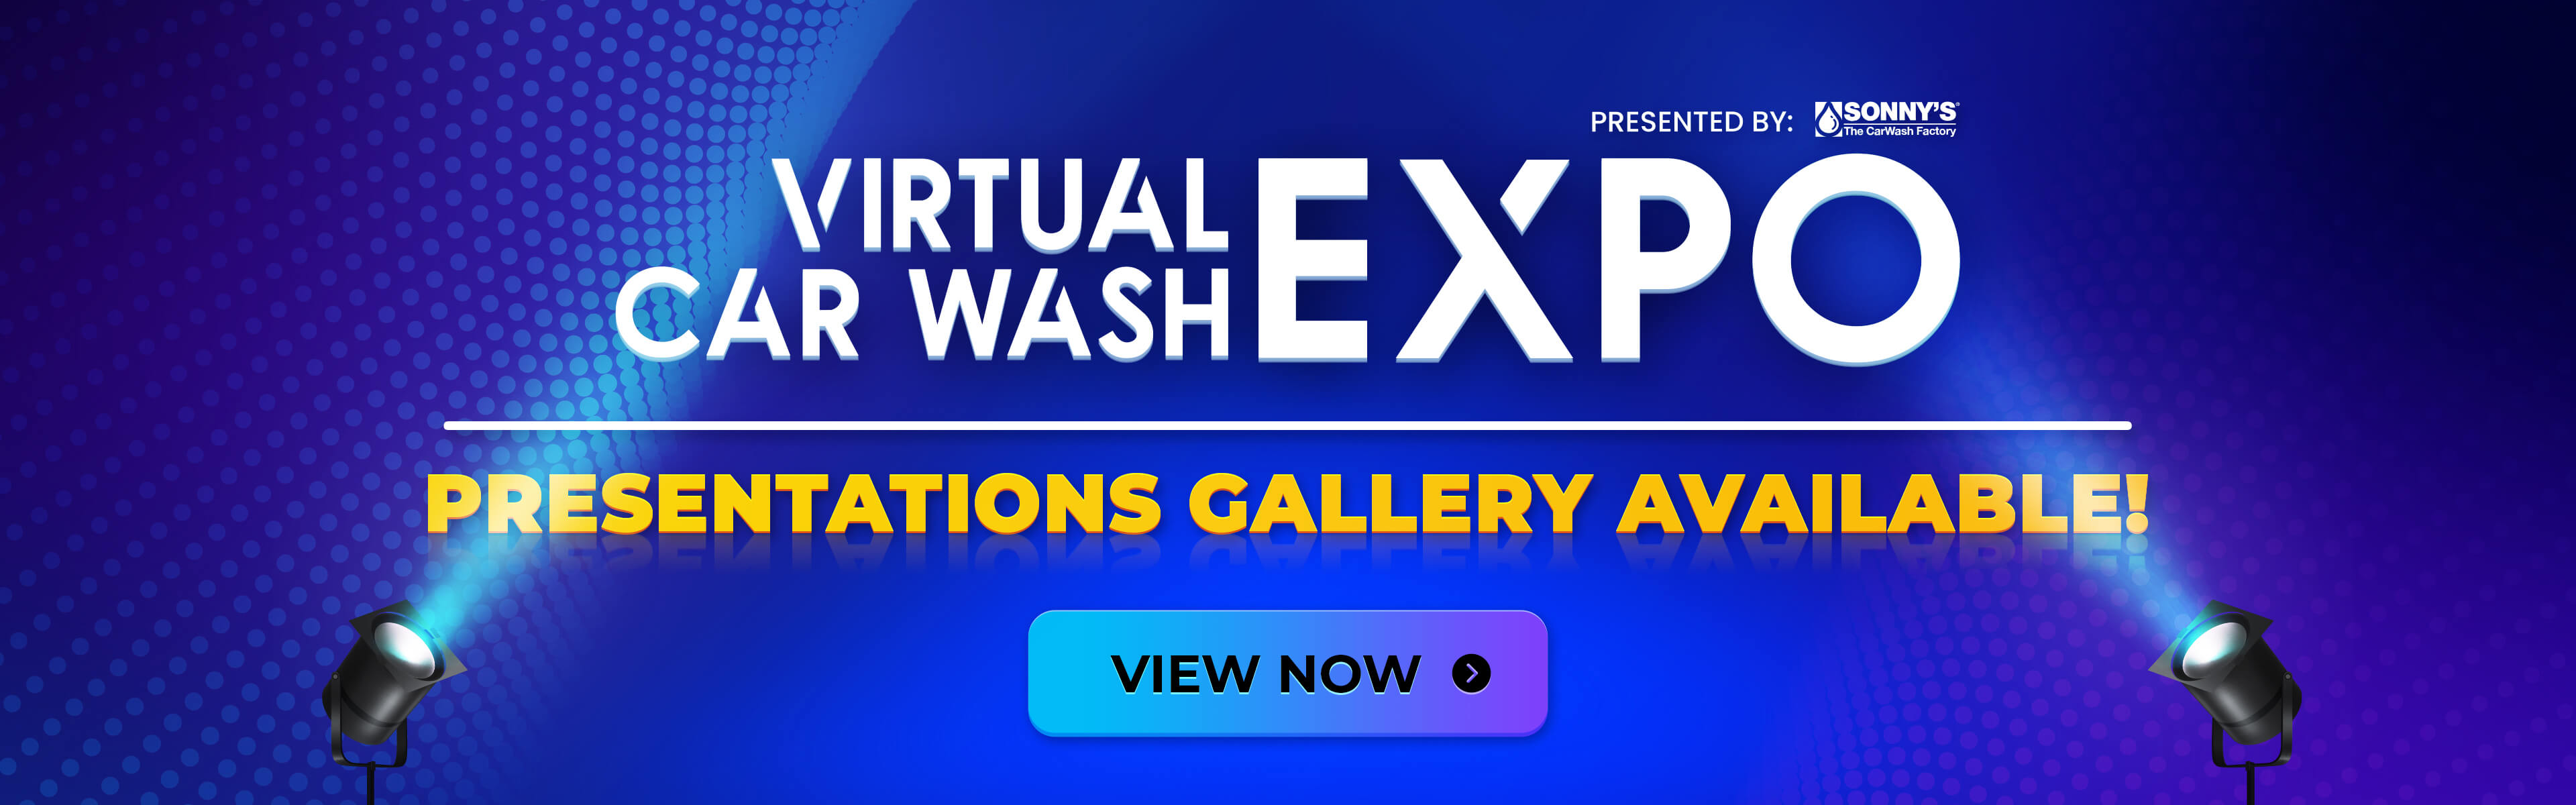 Virtual Car Wash Expo - Presentations Available Now!